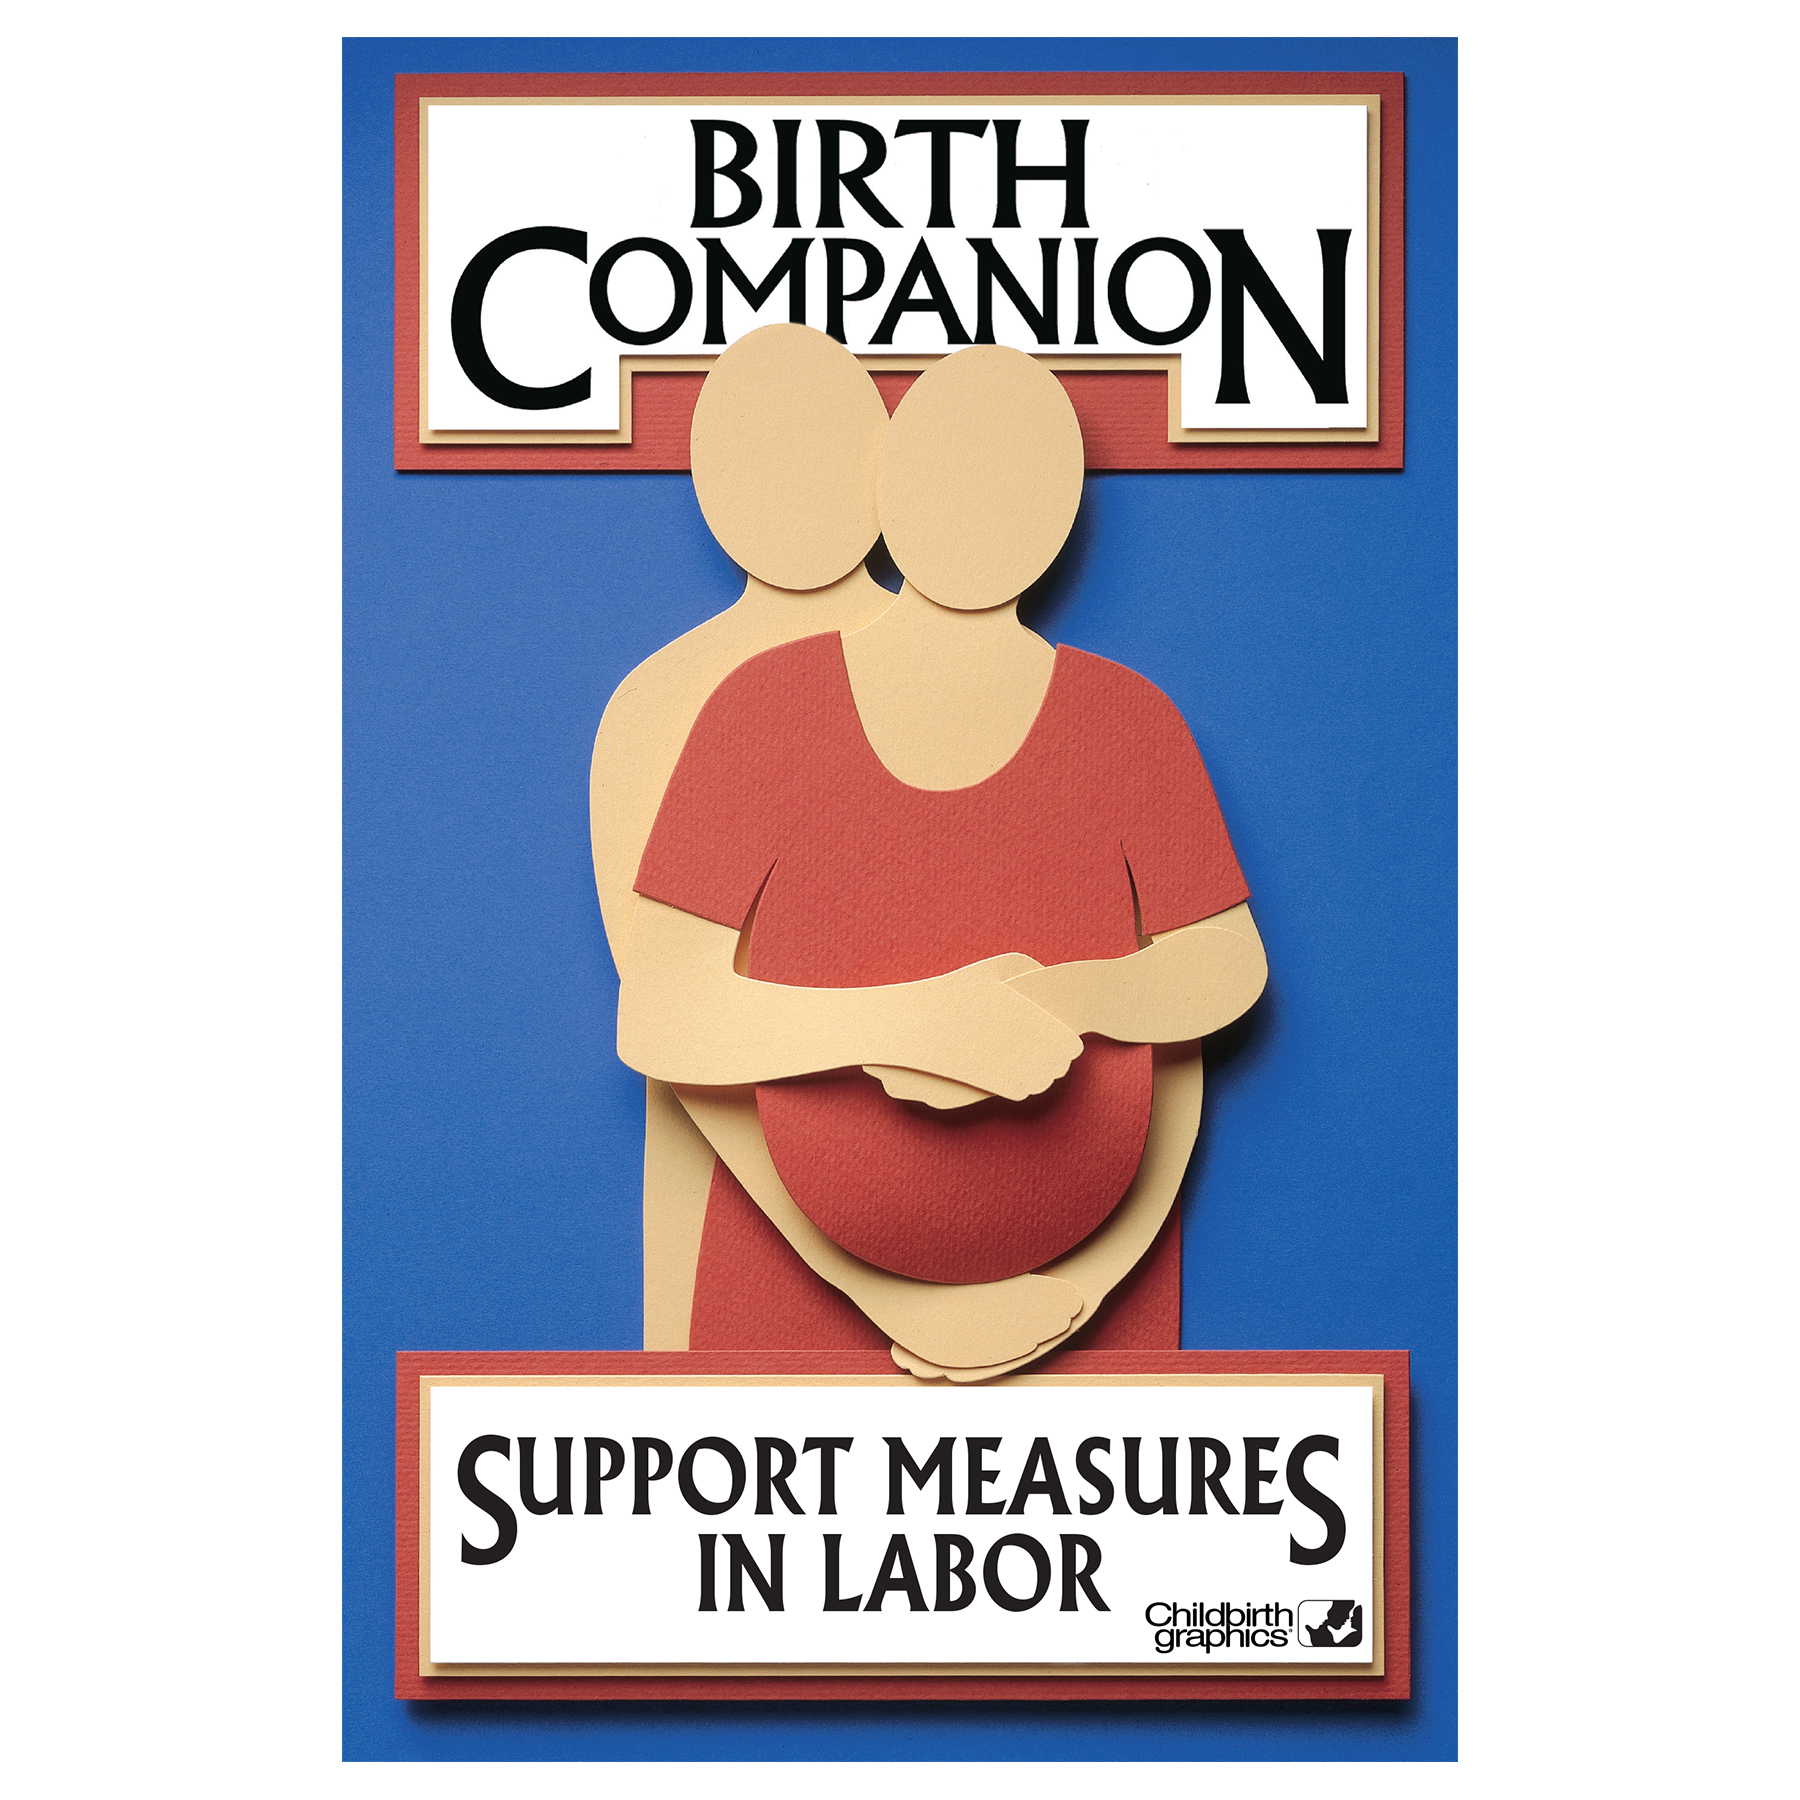 Birth Companion booklet cover image, photographic reference of labor comfort measures, Childbirth Graphics, 38525